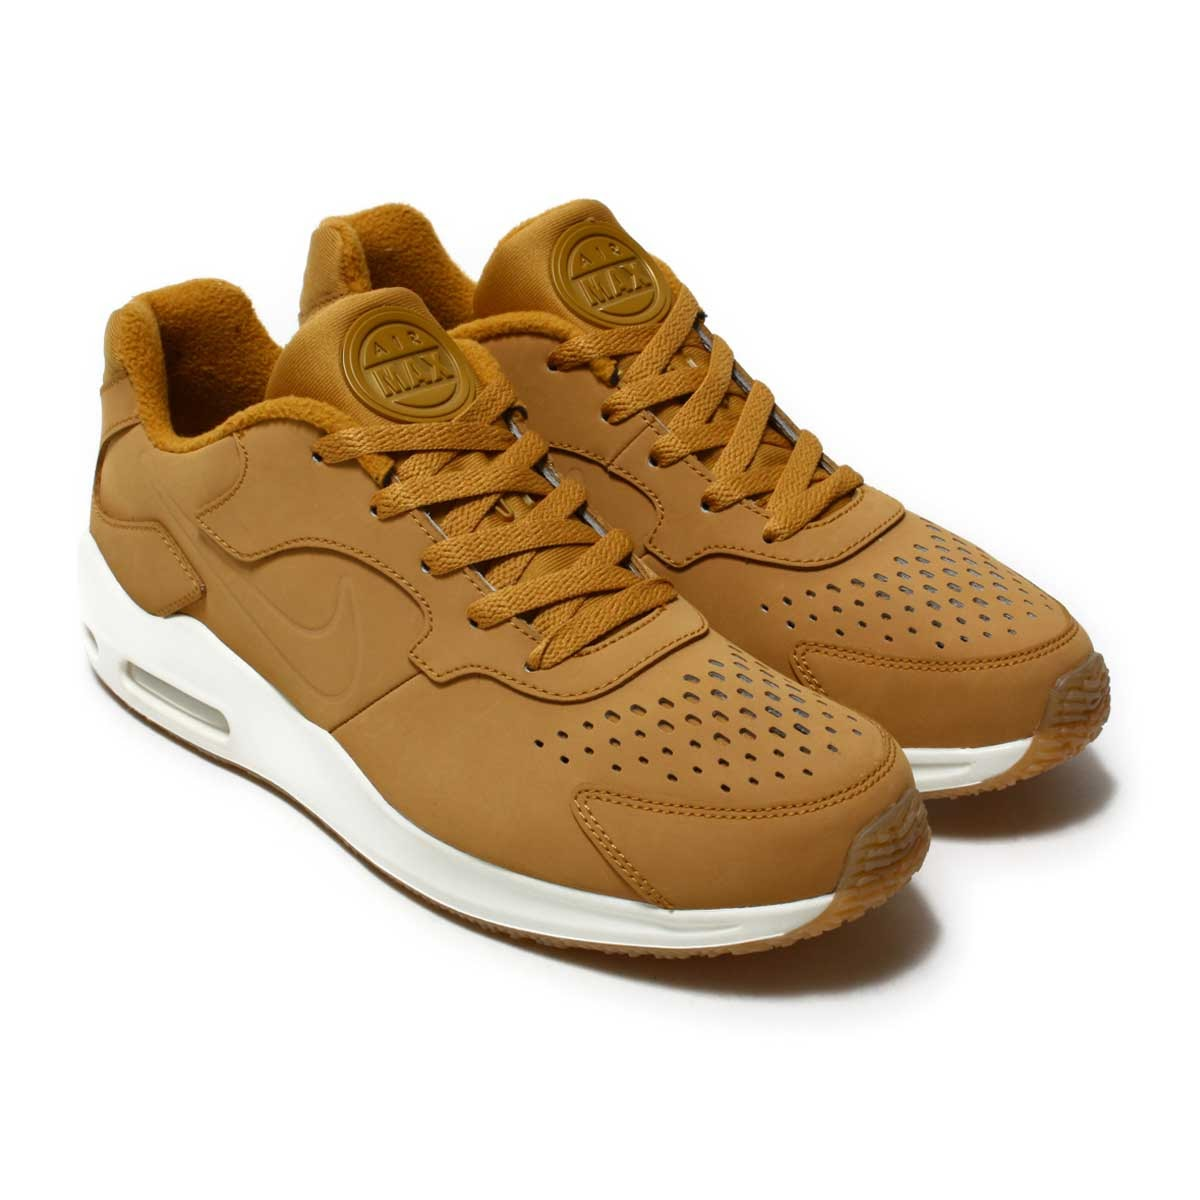 ef37d00221 It fuses with a traditional style and modern comfort. I adopt upper of the  smooth suede. Tri Vis Air-Sole unit provides visible outstanding クッショニング.